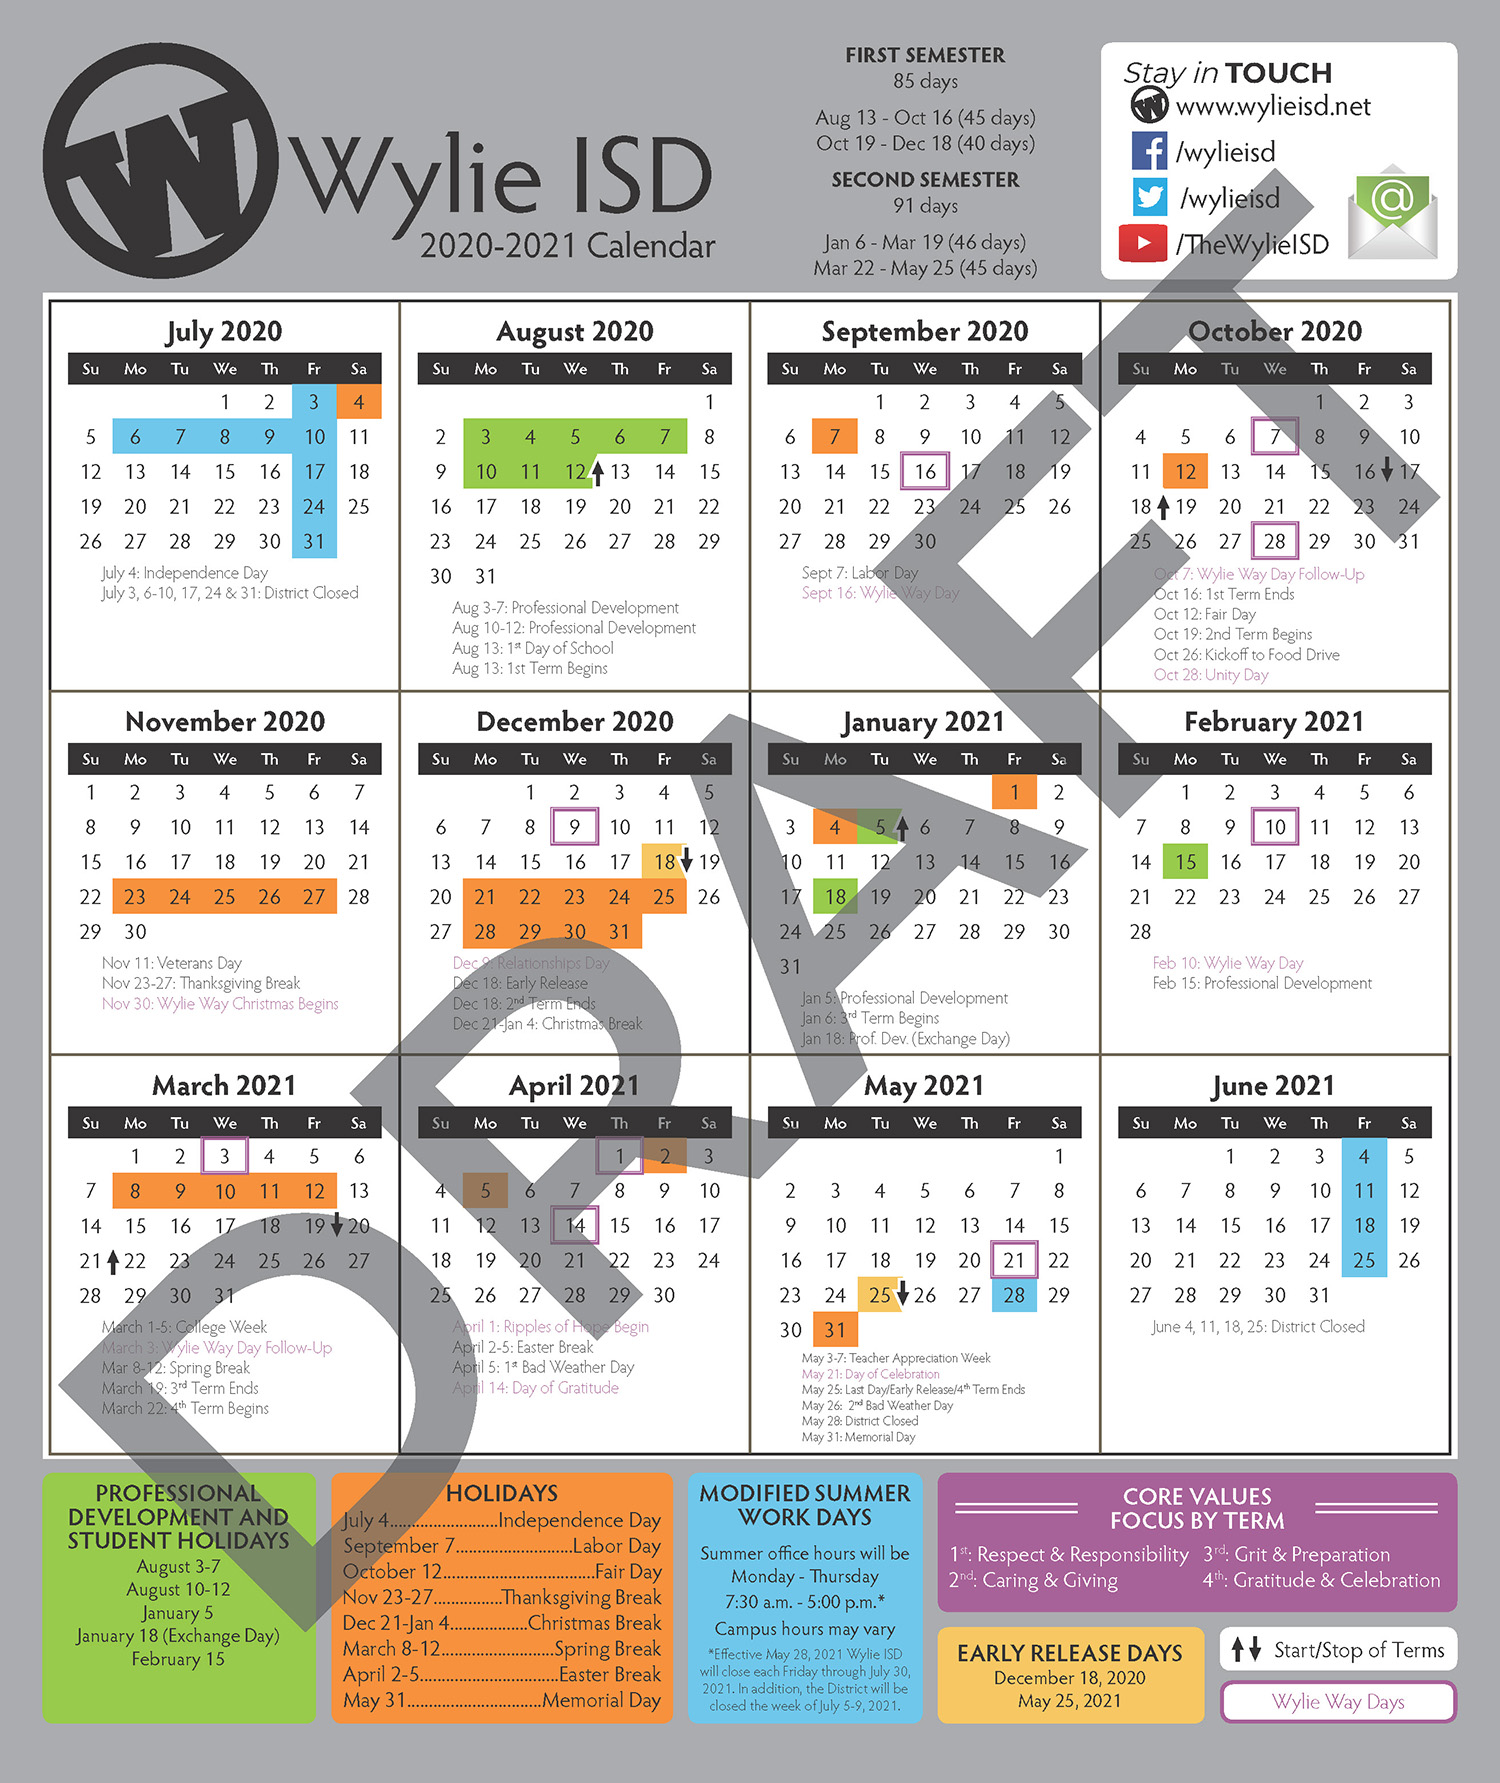 2020-21 Wylie ISD Proposed Calendar